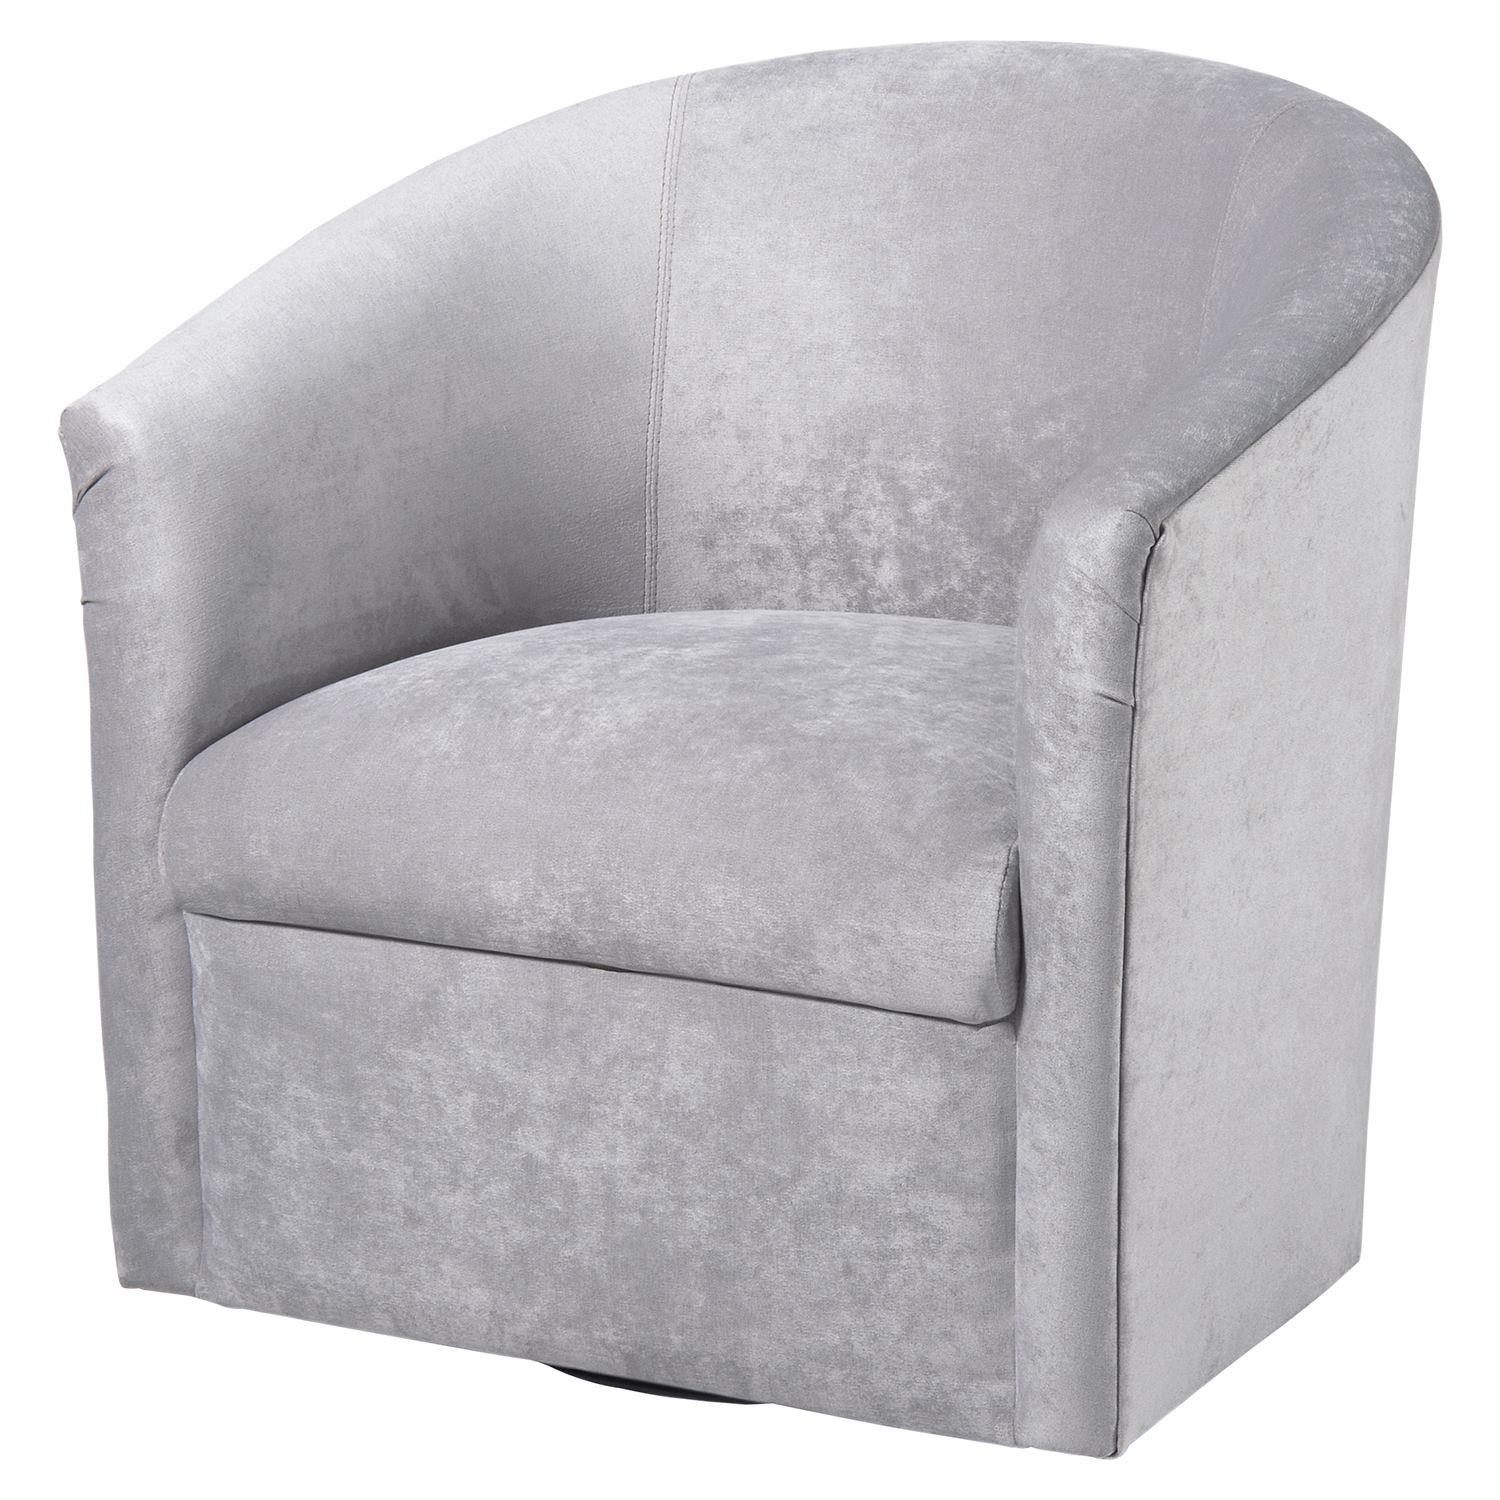 Elizabeth Swivel Chair - Silver